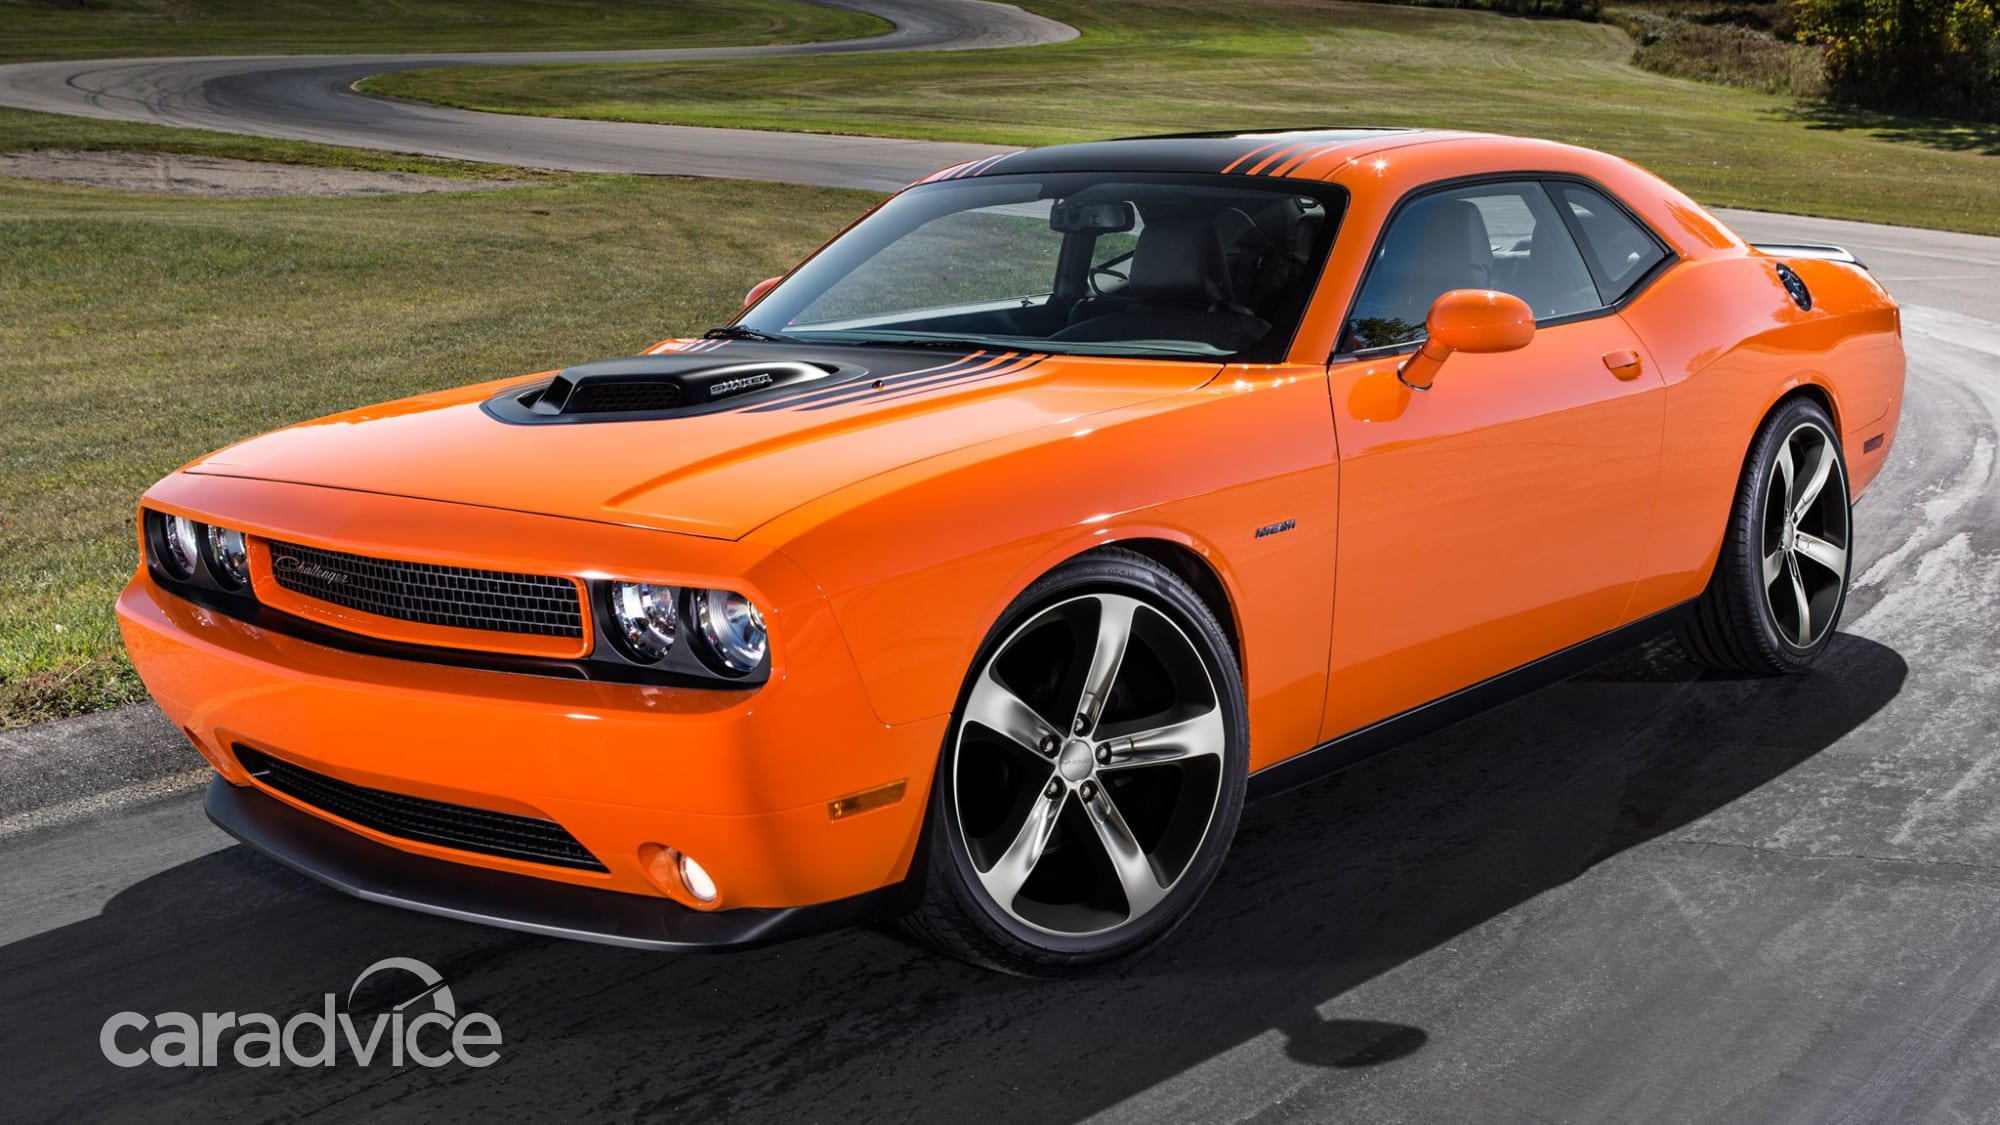 dodge challenger under consideration for australia | caradvice